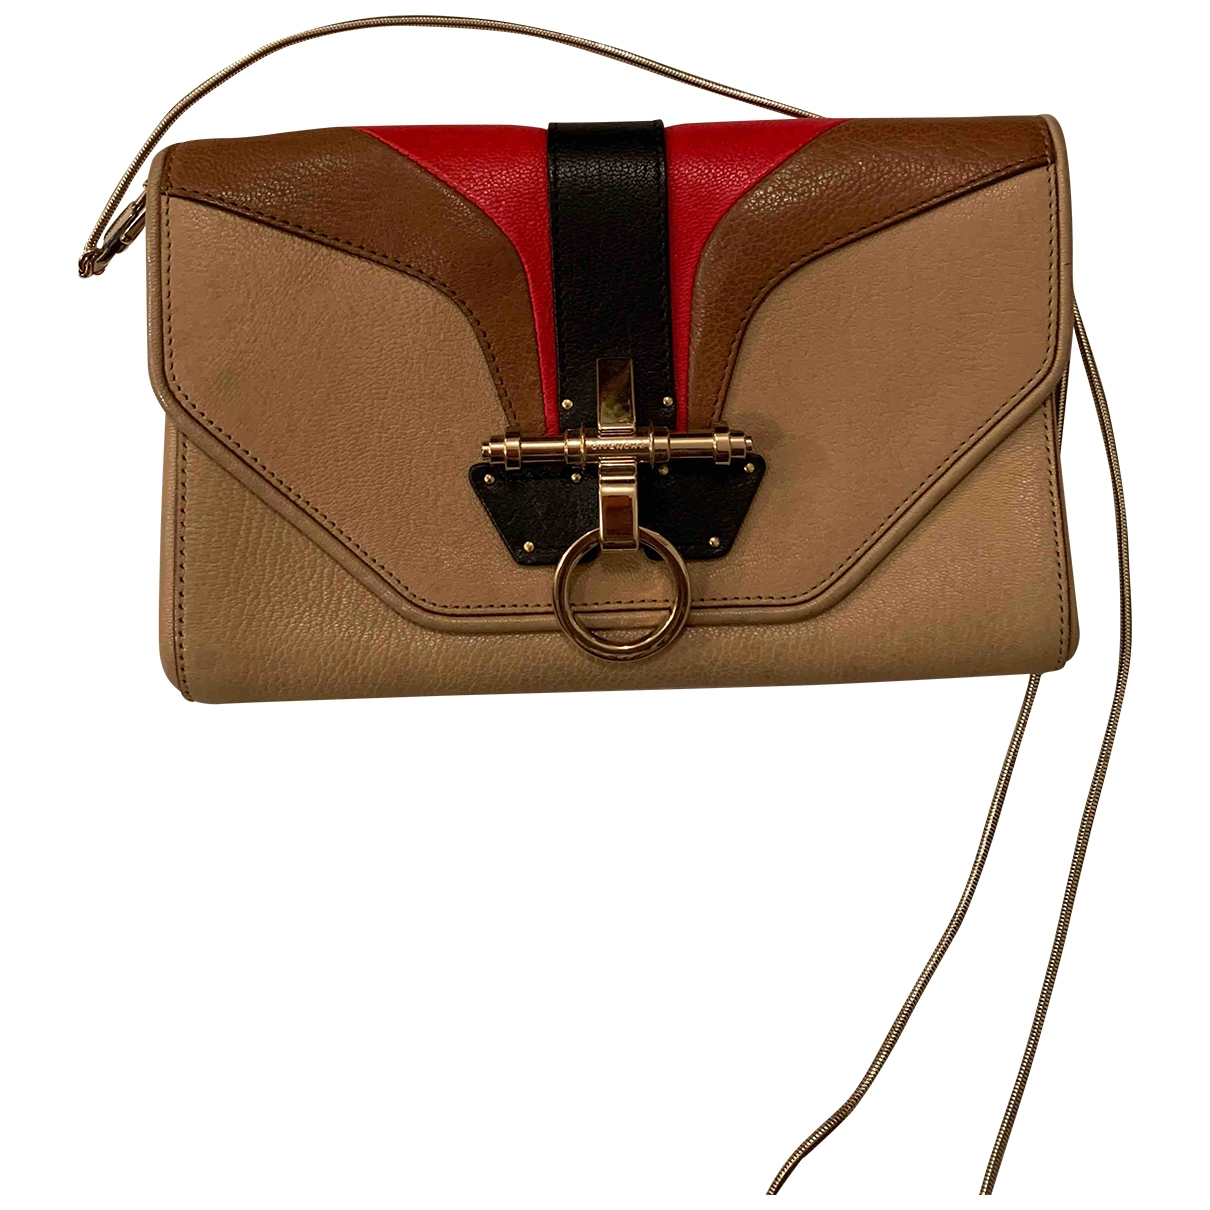 Givenchy \N Clutch in  Bunt Leder